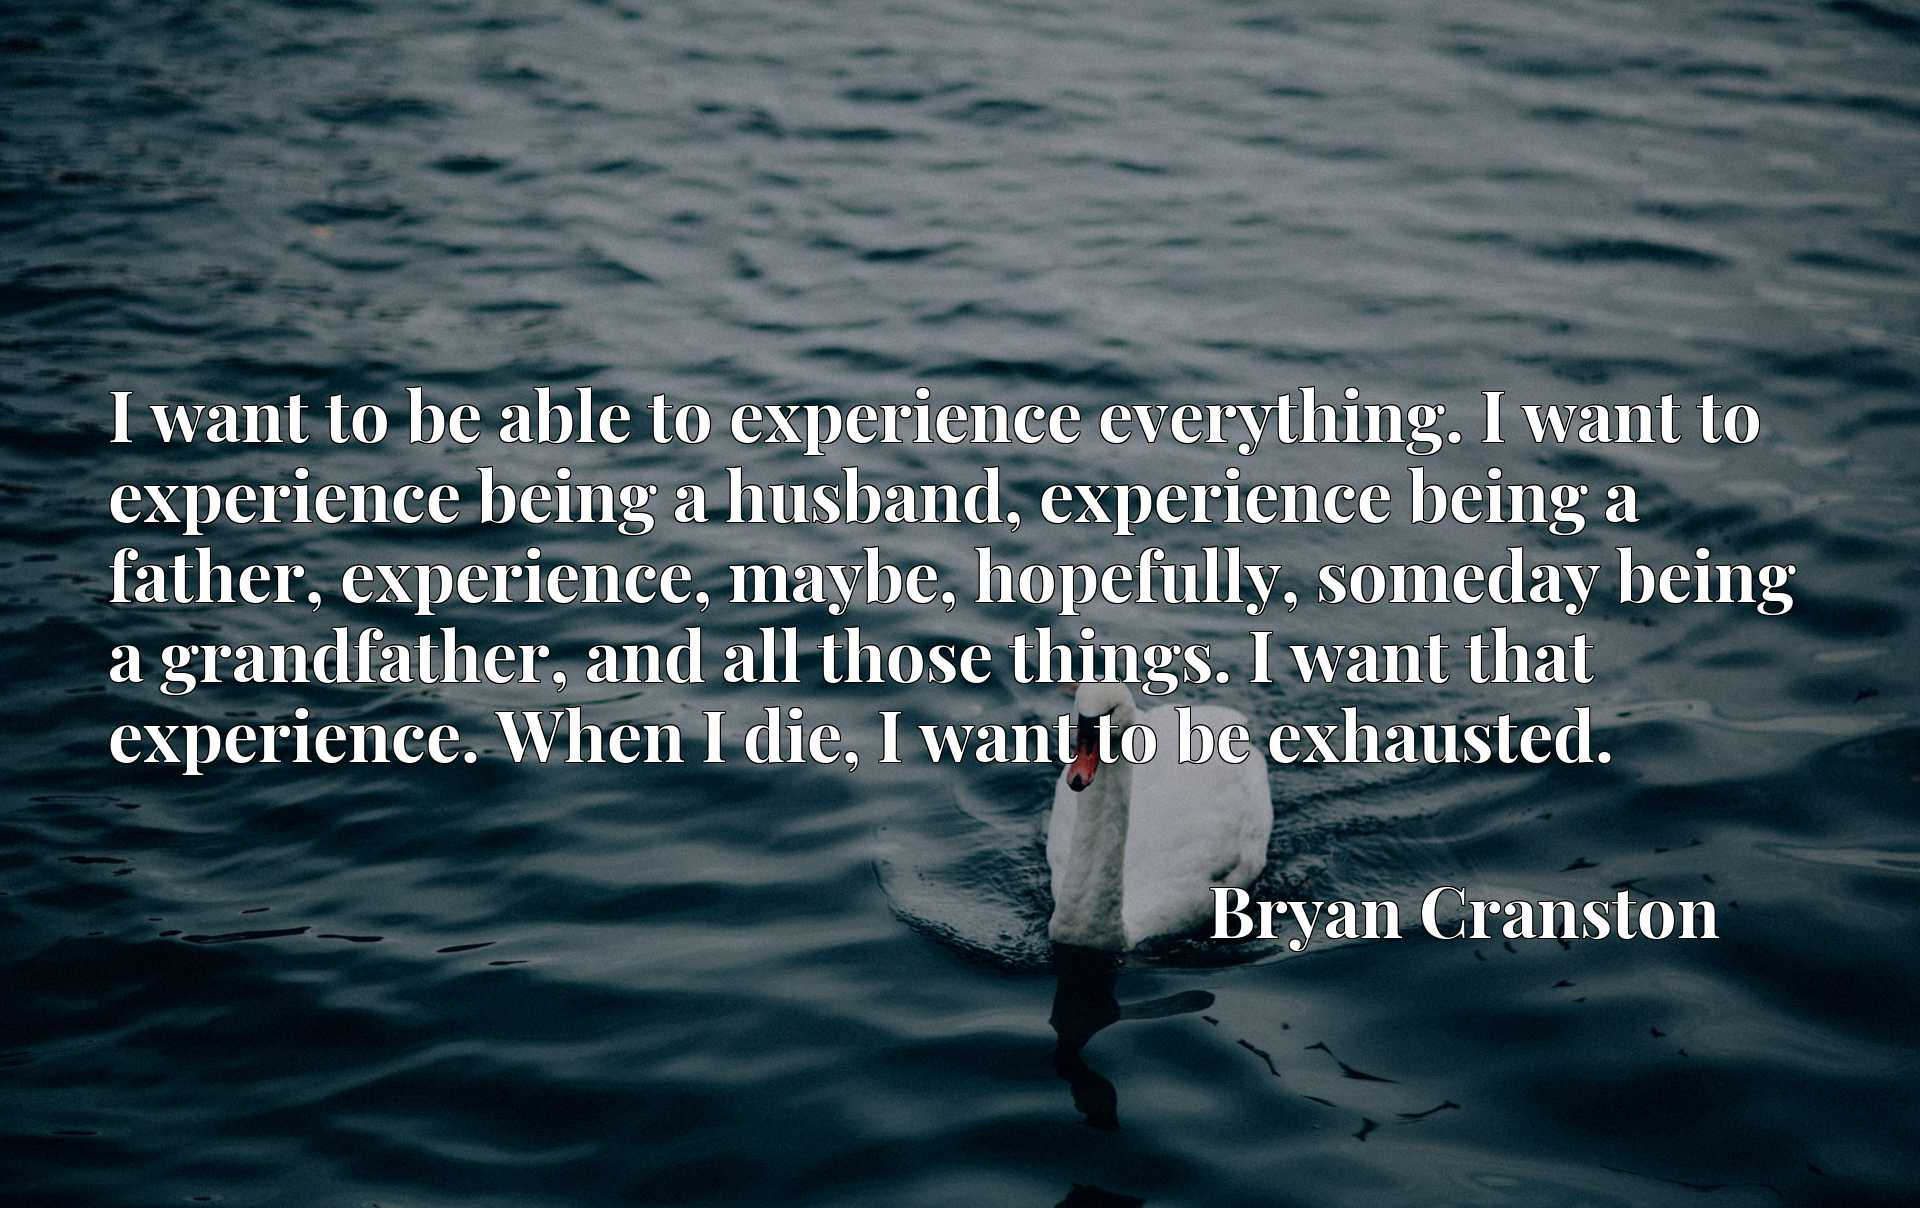 I want to be able to experience everything. I want to experience being a husband, experience being a father, experience, maybe, hopefully, someday being a grandfather, and all those things. I want that experience. When I die, I want to be exhausted.